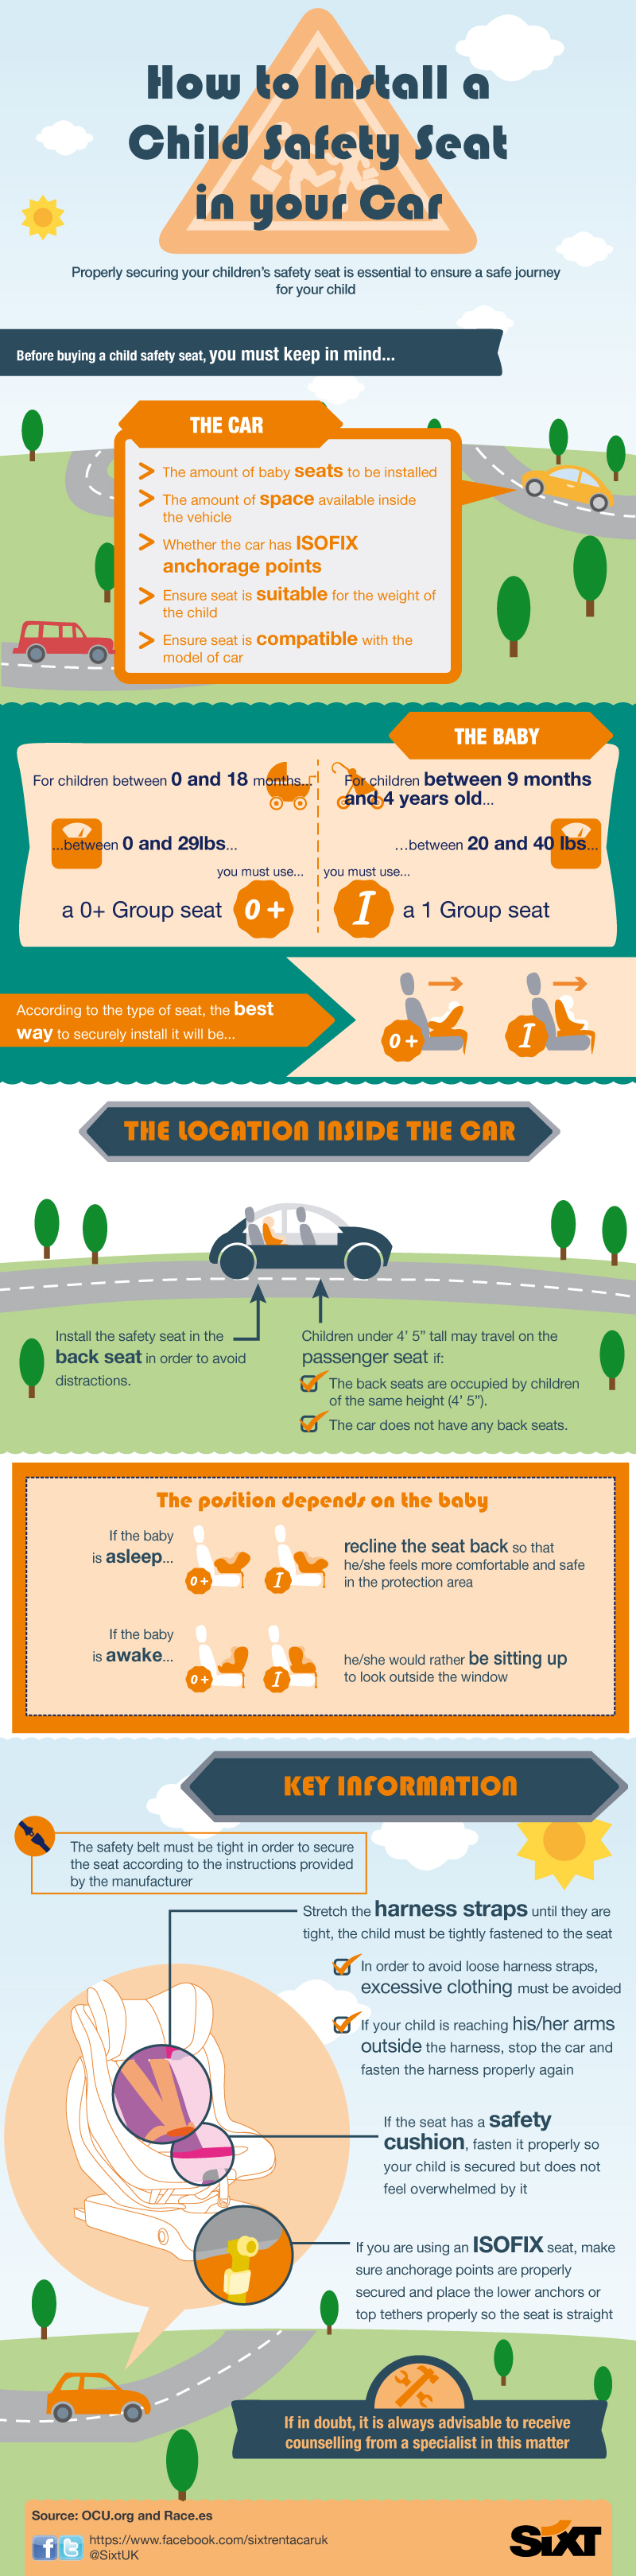 how to set up a baby seat in car infographic